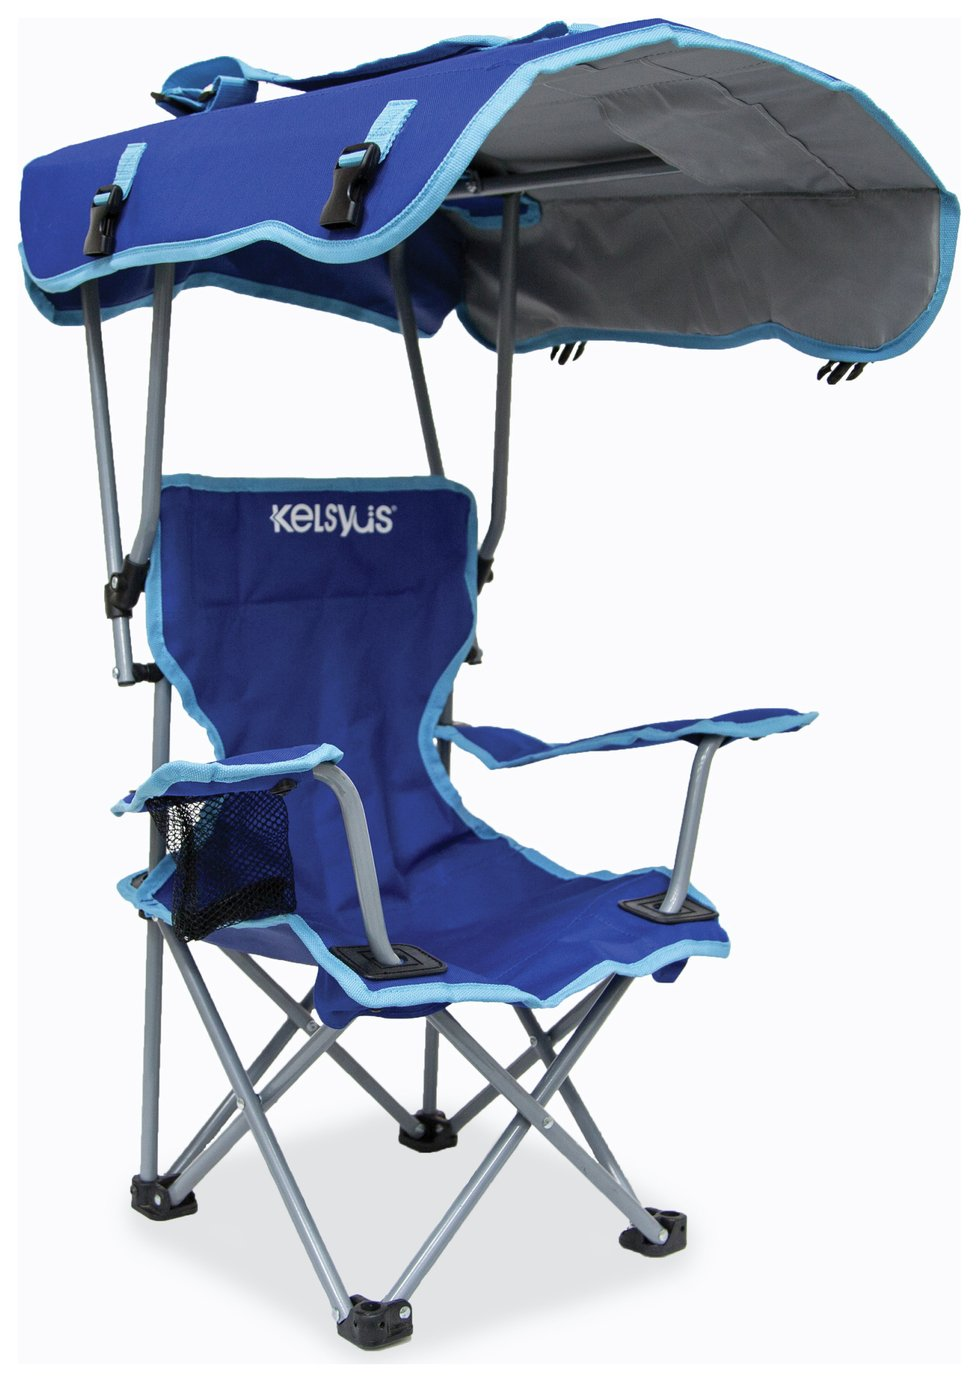 fishing chair argos kids high booster seat results for kelsyus kid s canopy